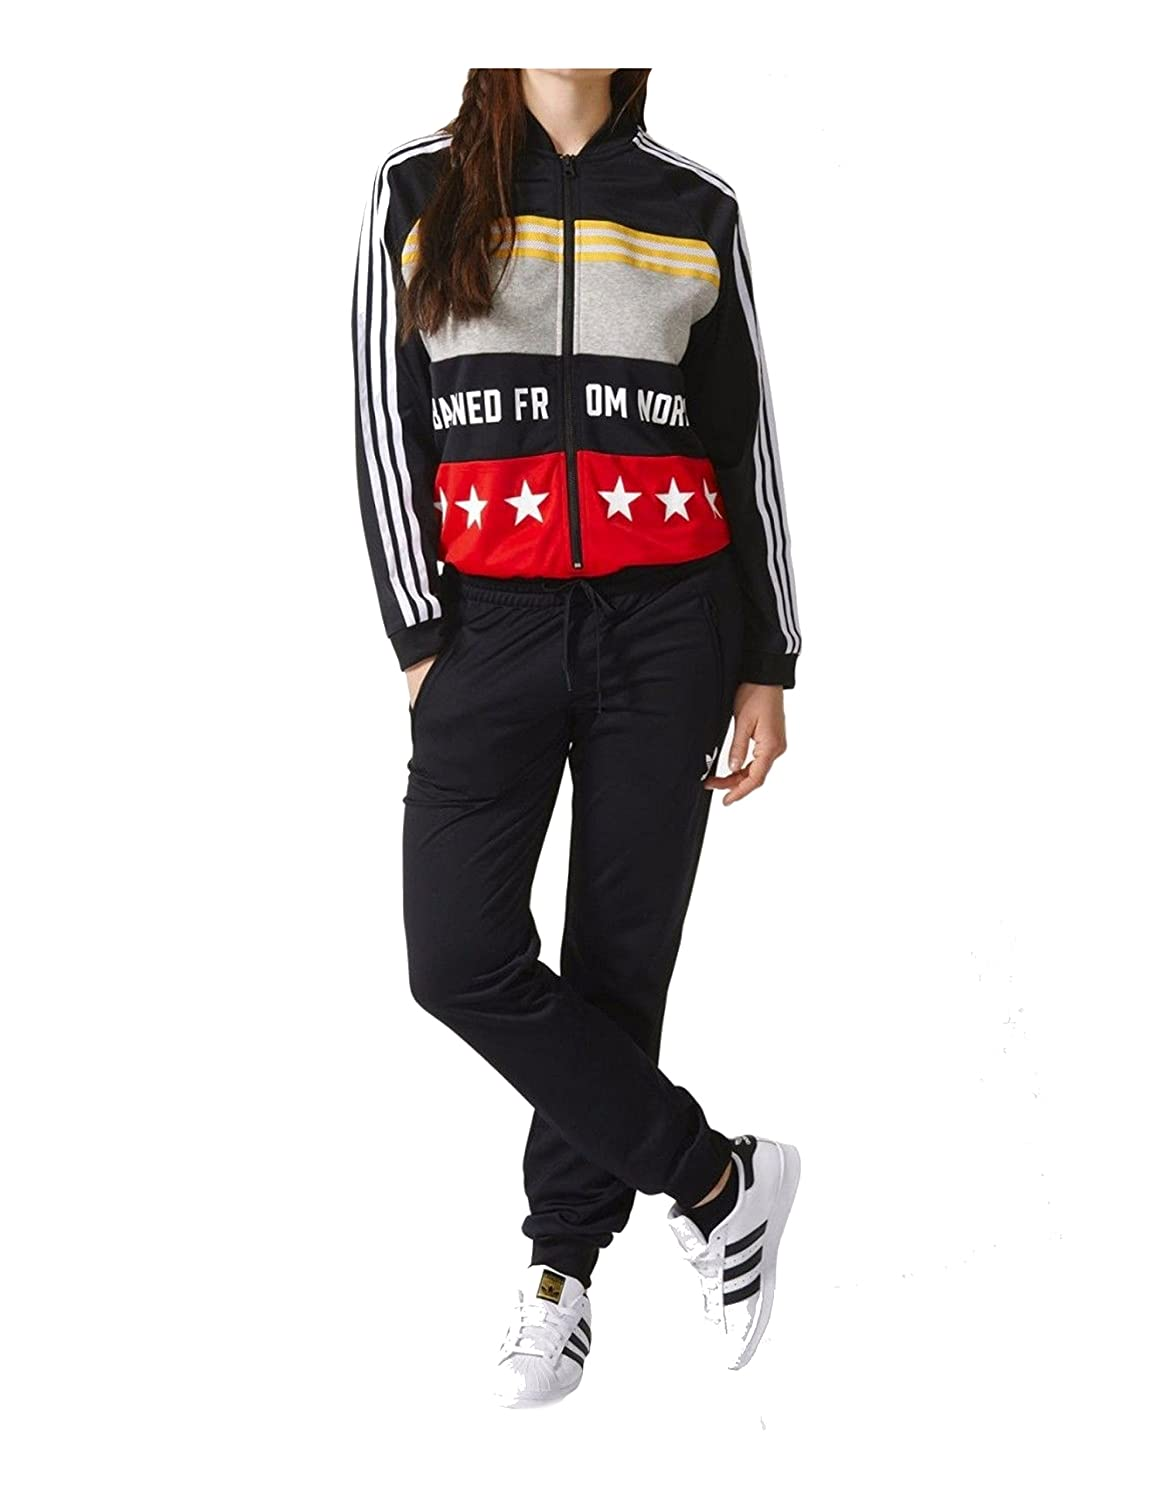 9a361cd464a03 adidas Originals Women's Rita Ora Onesuit Tracksuit AY7136,Small:  Amazon.co.uk: Sports & Outdoors